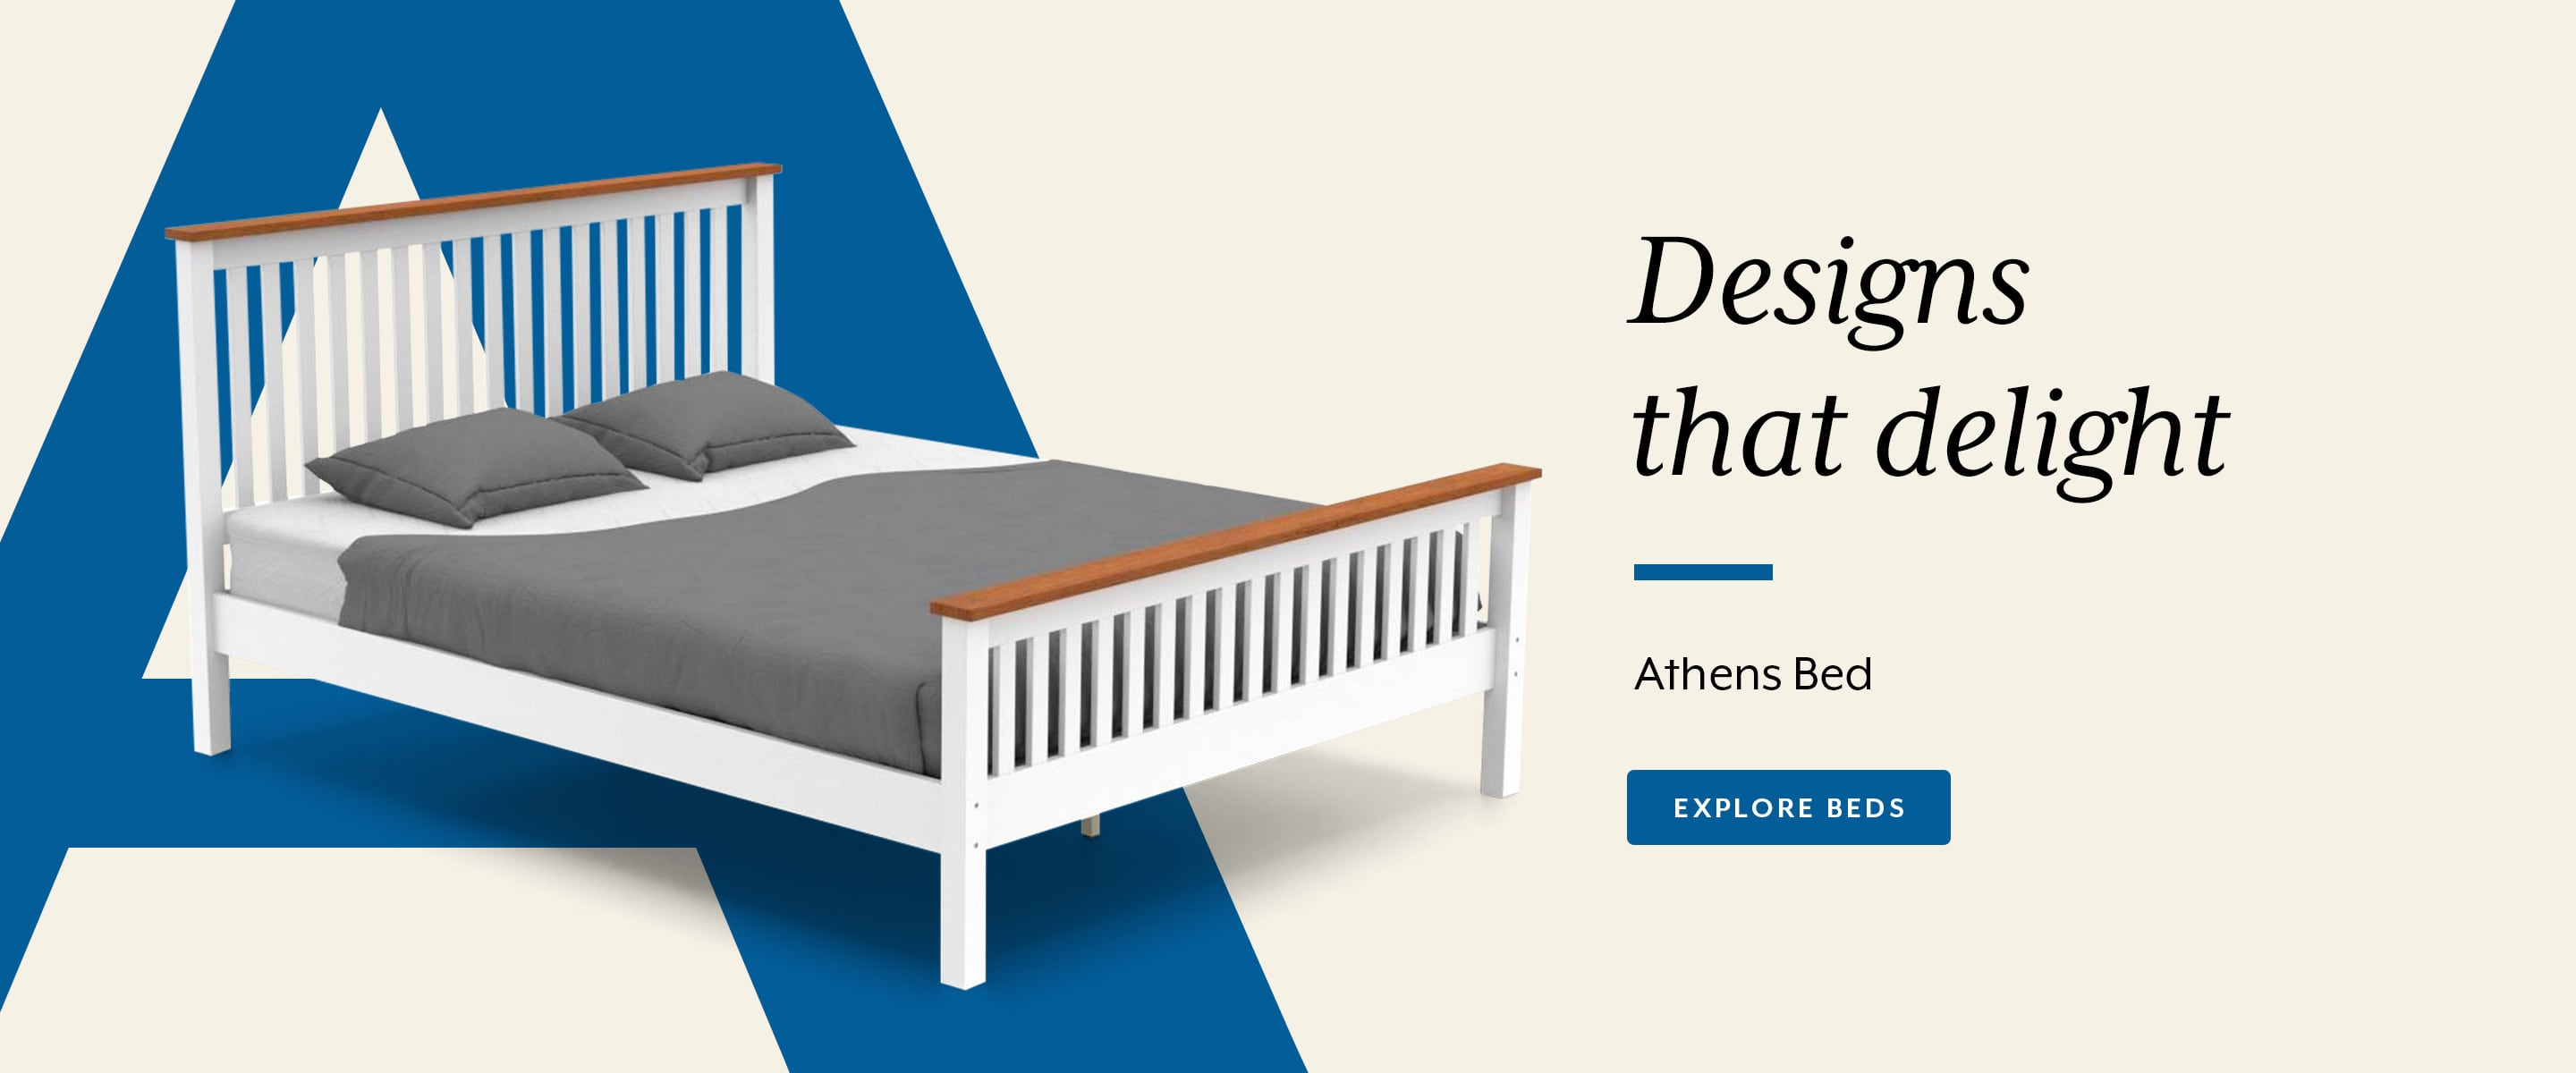 Athens Bed